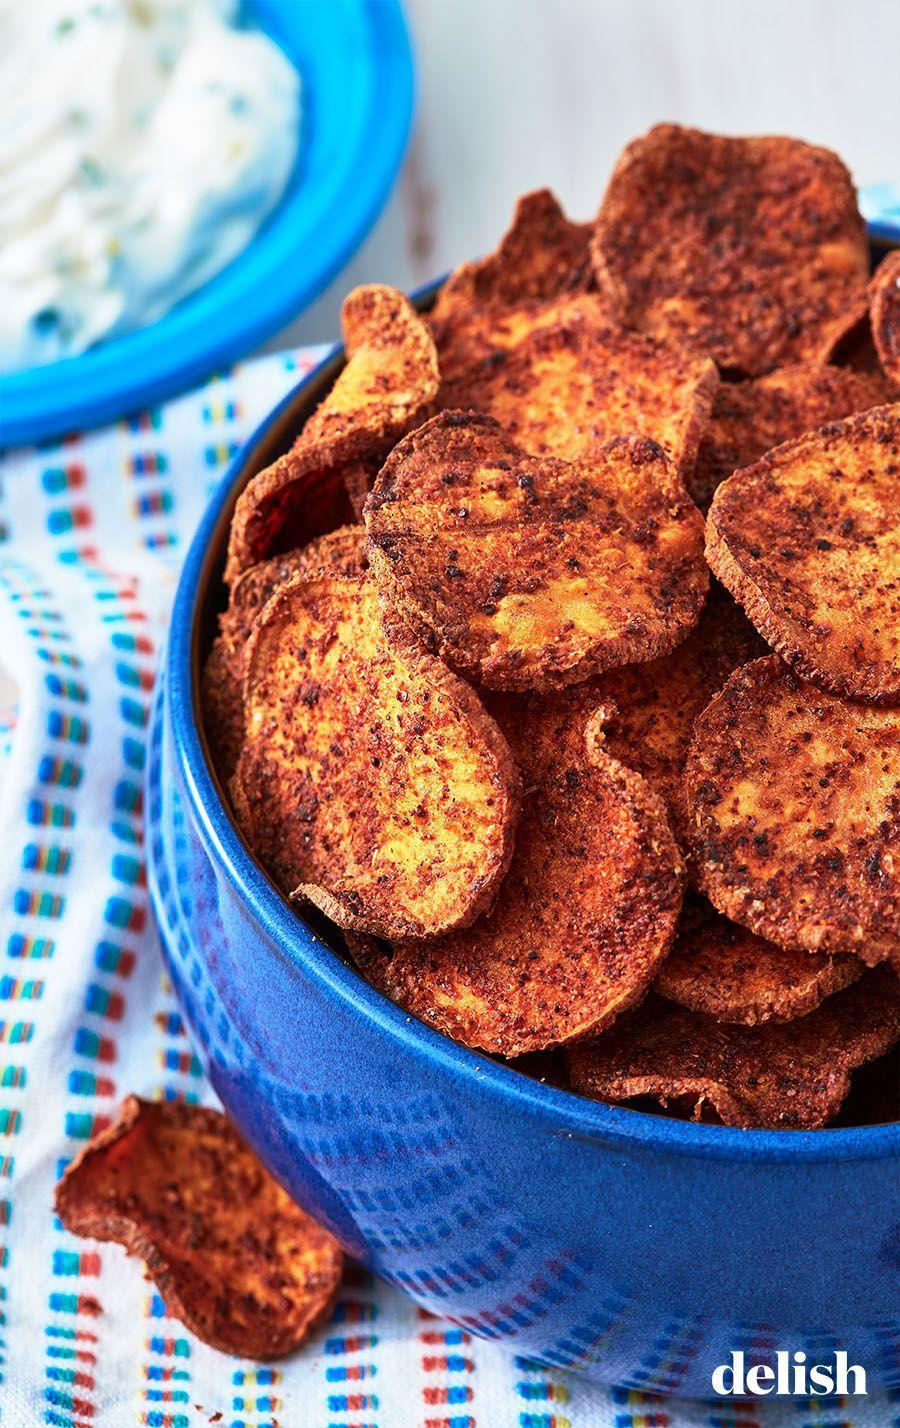 """<p>Homemade chips with a fall twist.</p><p>Get the recipe from <a href=""""https://www.delish.com/cooking/recipe-ideas/recipes/a49369/sweet-potato-chips-recipe/"""" rel=""""nofollow noopener"""" target=""""_blank"""" data-ylk=""""slk:Delish"""" class=""""link rapid-noclick-resp"""">Delish</a>.</p>"""